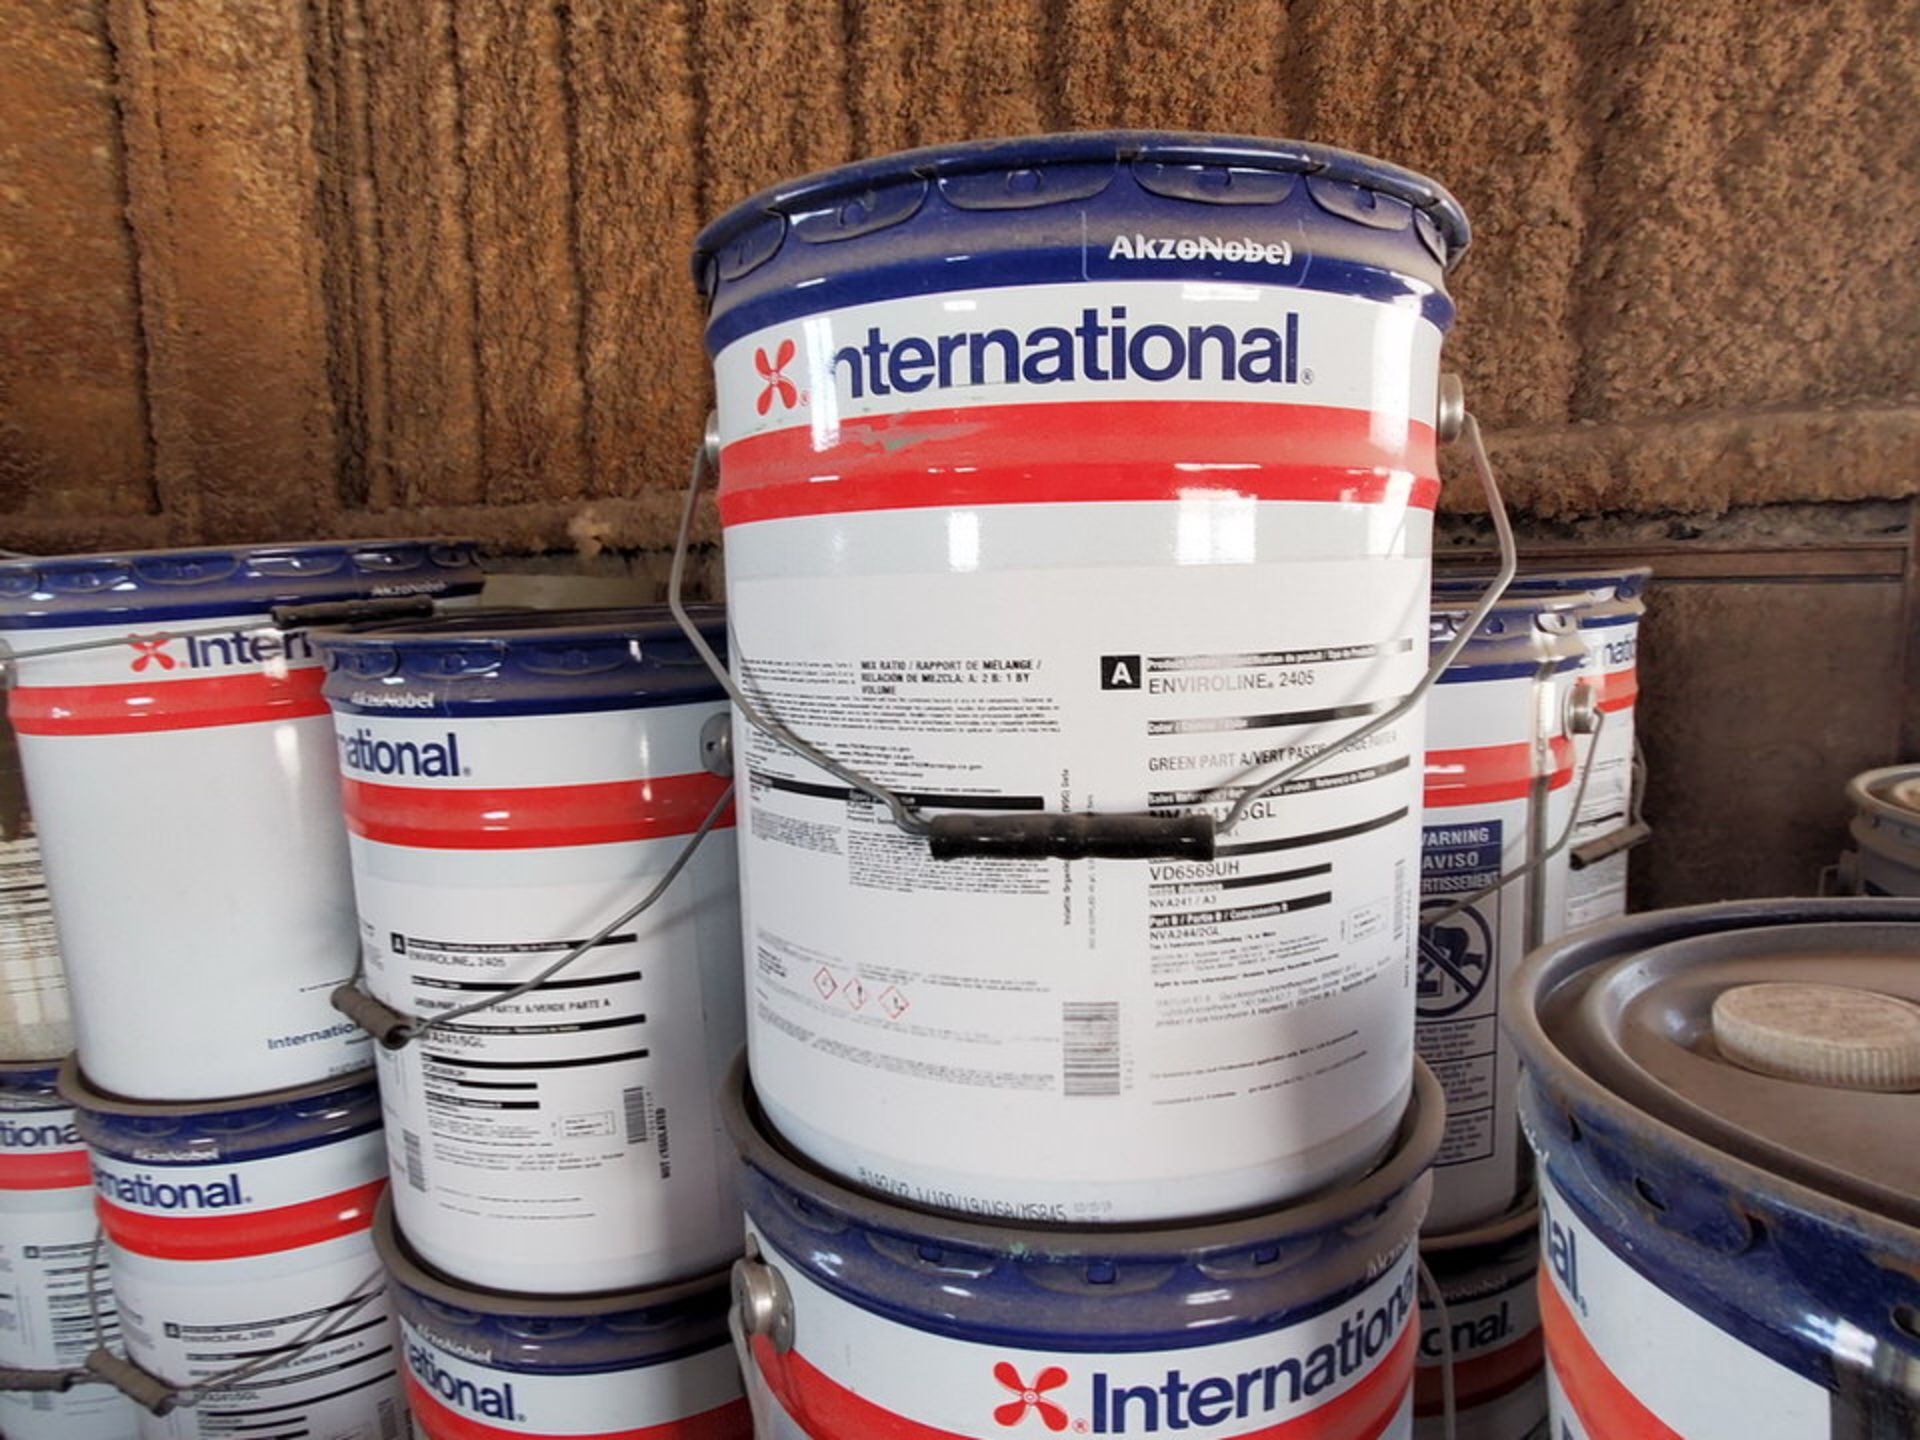 Assorted Paints & Marine Coatings Mfg's: PPG, Intl. & Other - Image 8 of 10